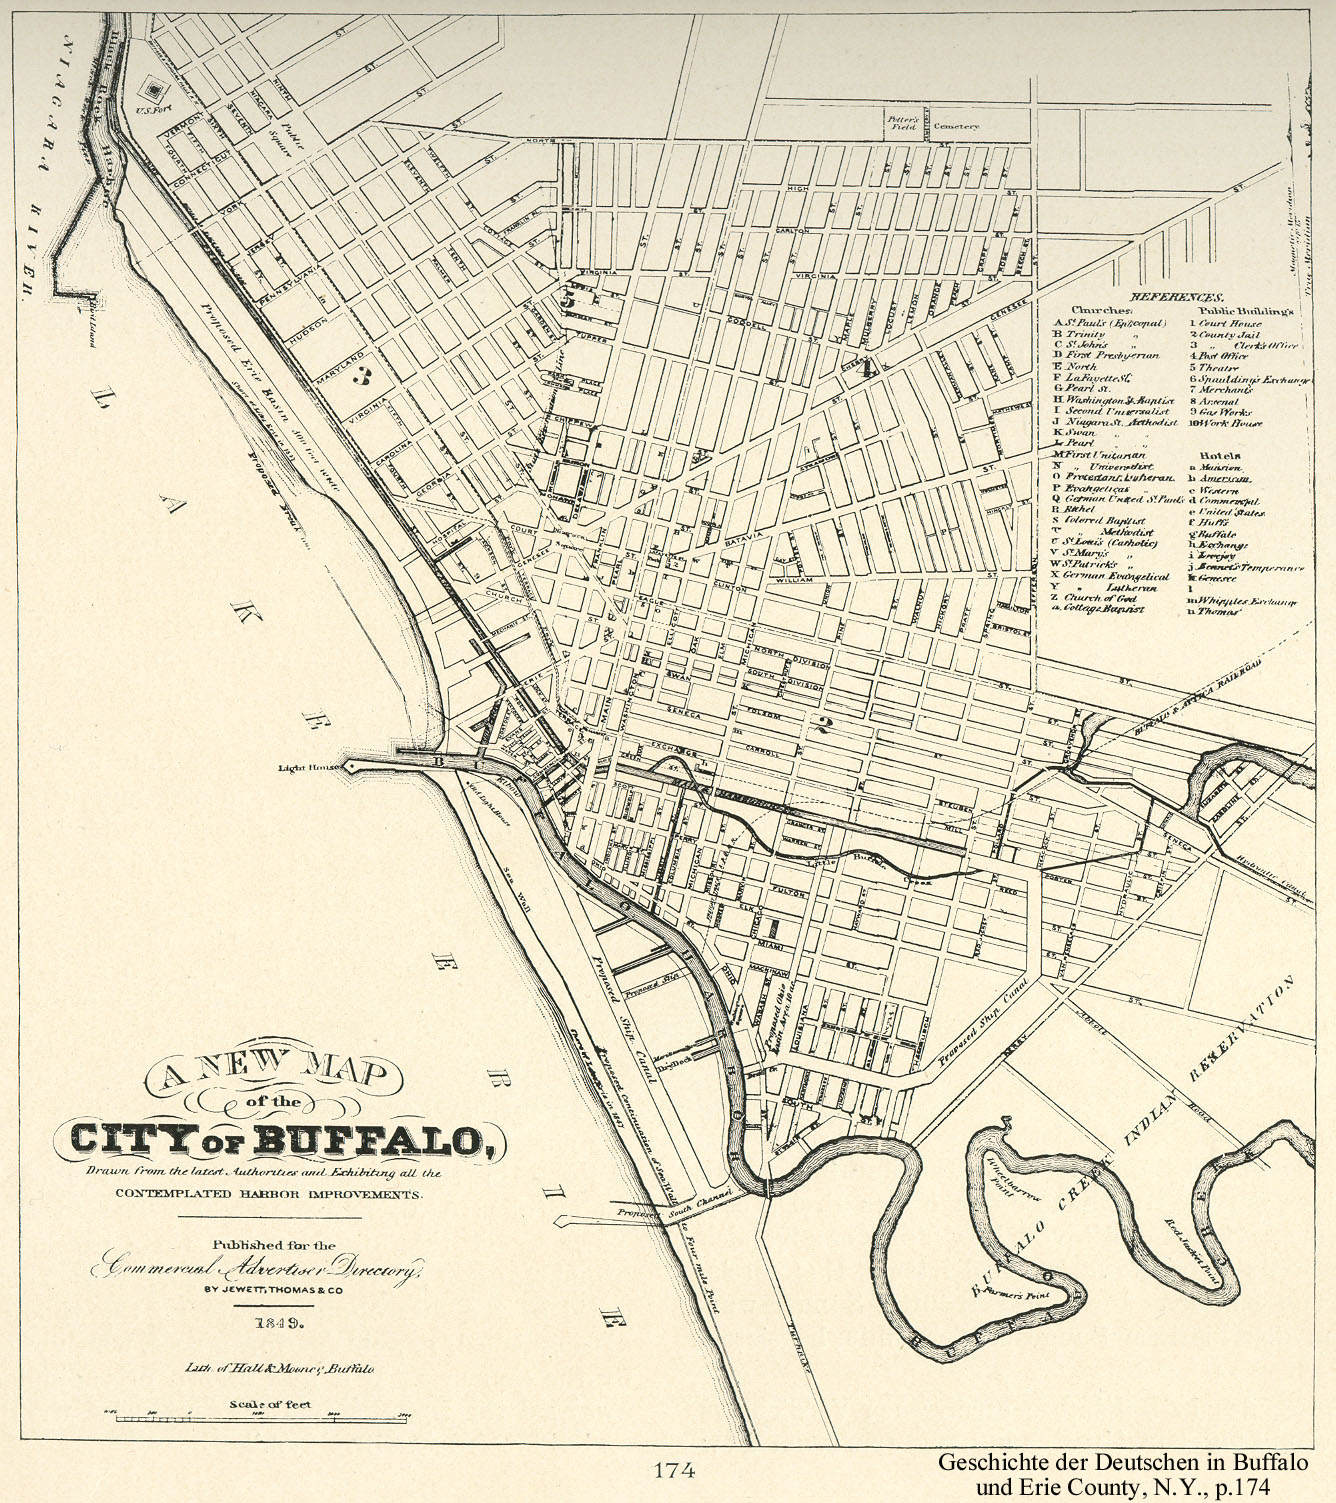 BuffaloResearch.com--Historic Maps of Buffalo, Erie on printable map of metro denver, printable map of anchorage, printable map of milwaukee, printable map of albany, printable map of greensboro, printable map of galatia, printable map of wichita, printable map of columbus, printable map of ann arbor, printable map of lake wallenpaupack, printable map of baton rouge, printable map of des moines, printable map of fort carson, printable map of greenville, printable map of quad cities, printable map of santa barbara, printable map of delaware water gap, printable map of lake of the ozarks, printable map of akron, printable map of salt lake city,